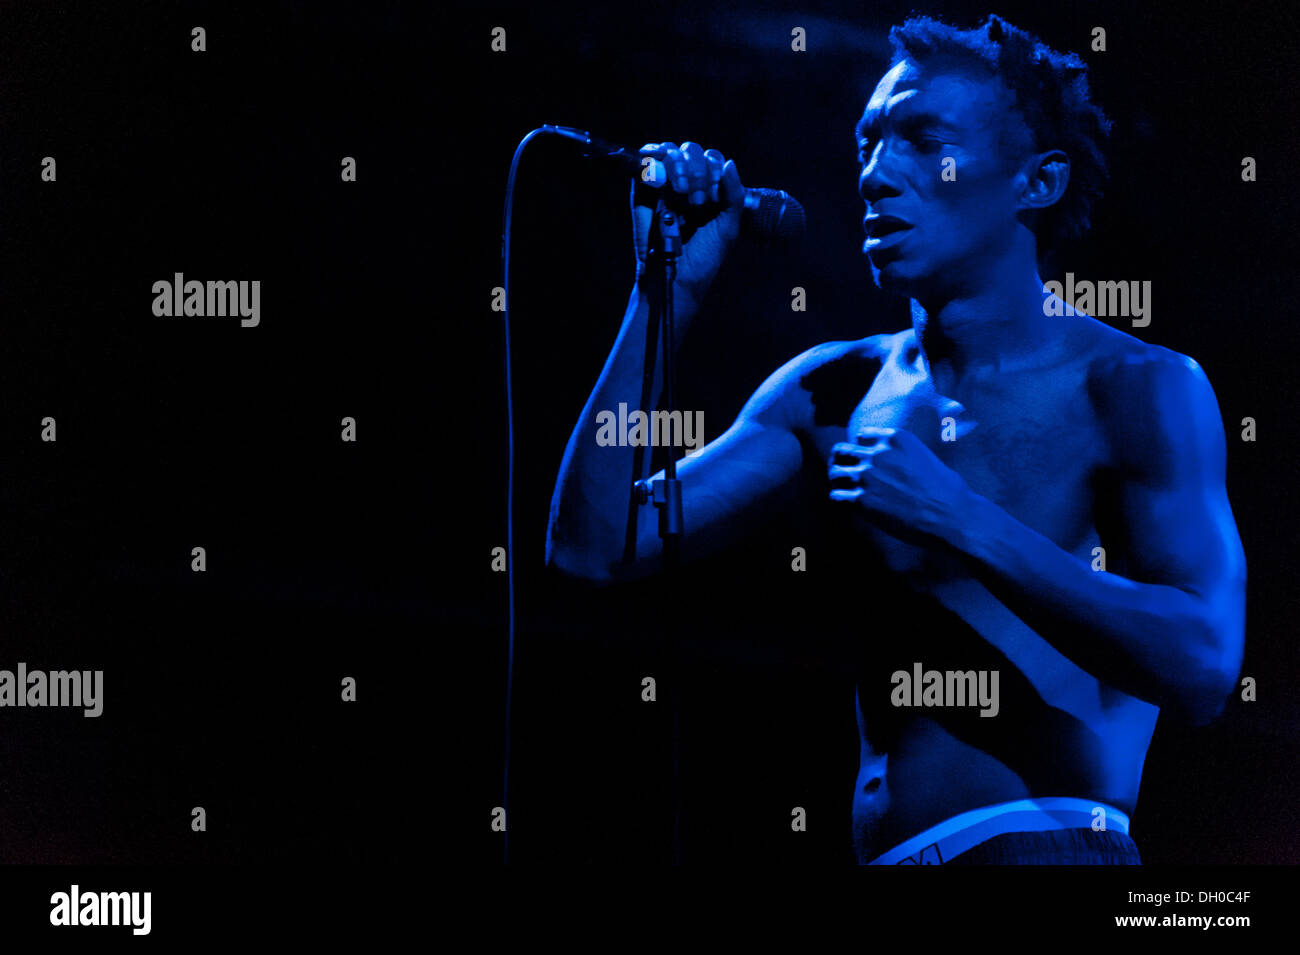 Tricky performs at Villa Ada Festival 2012. Stock Photo